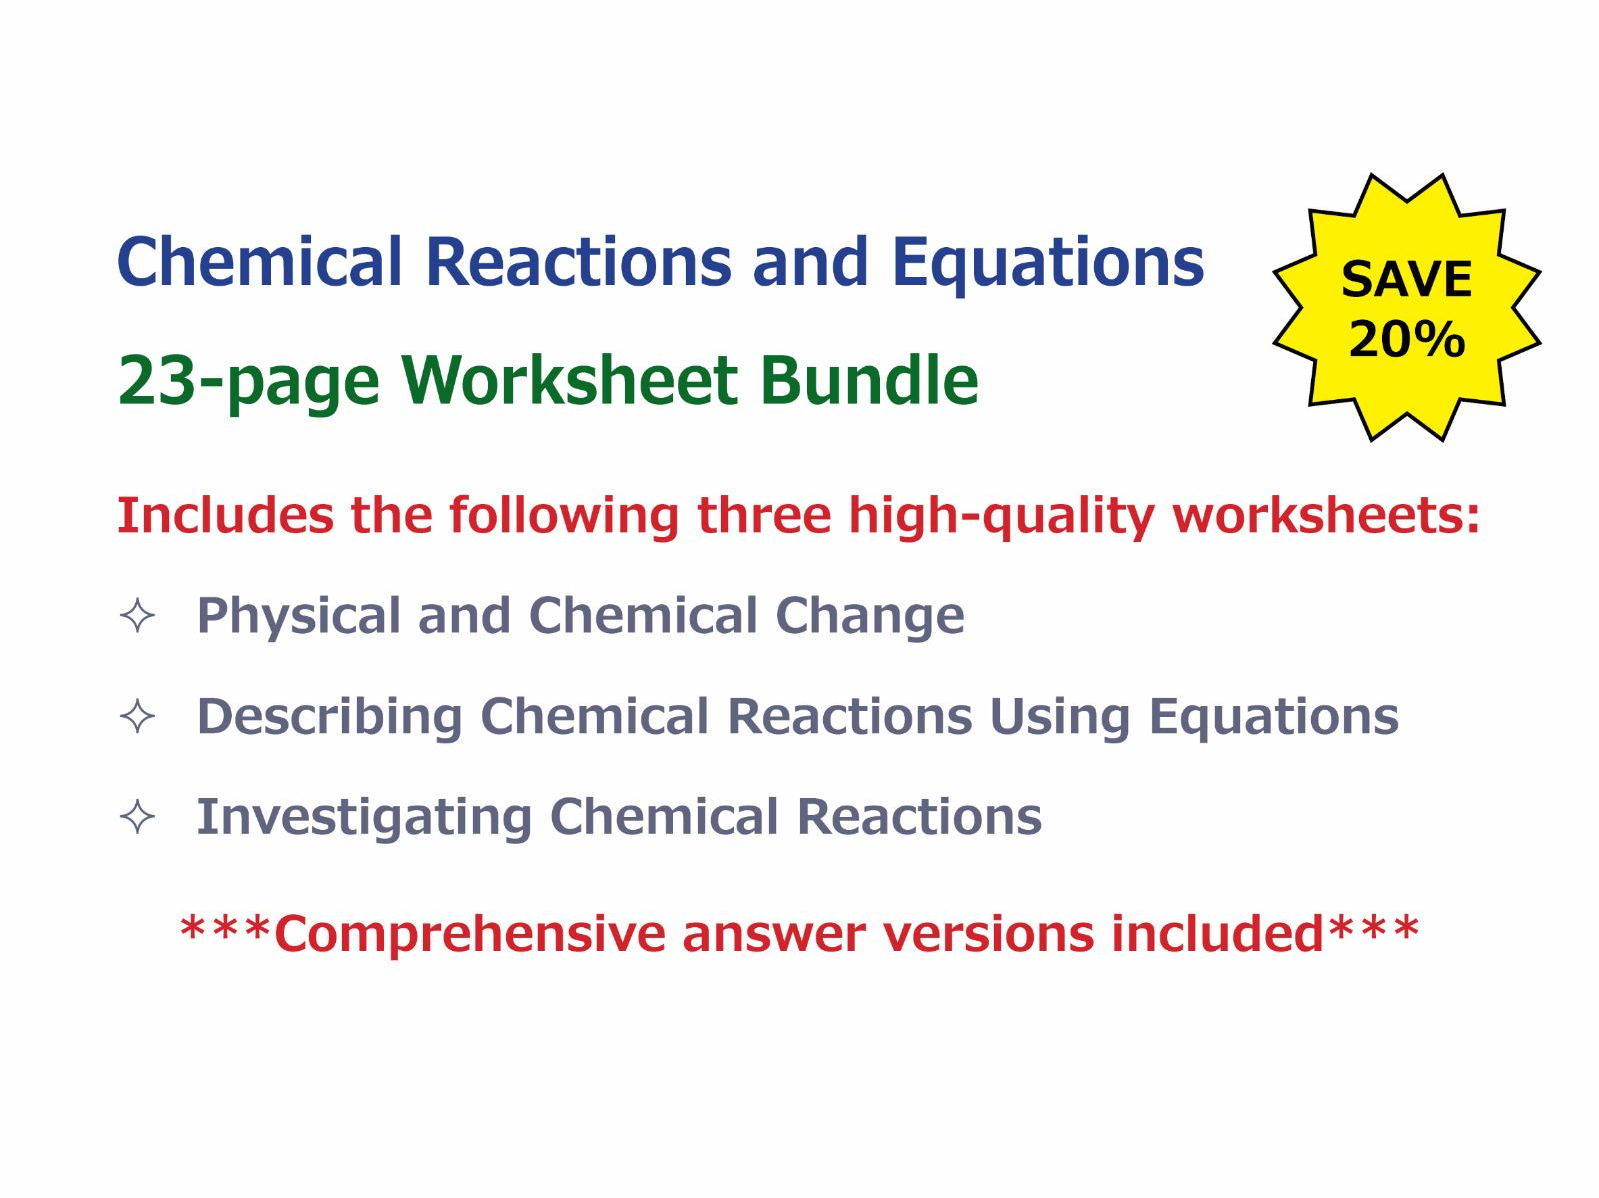 worksheet Ks3 Circuits Worksheet electricity models for circuits year 7 lesson powerpoint ks3 7jb chemical reactions and equations worksheet bundle